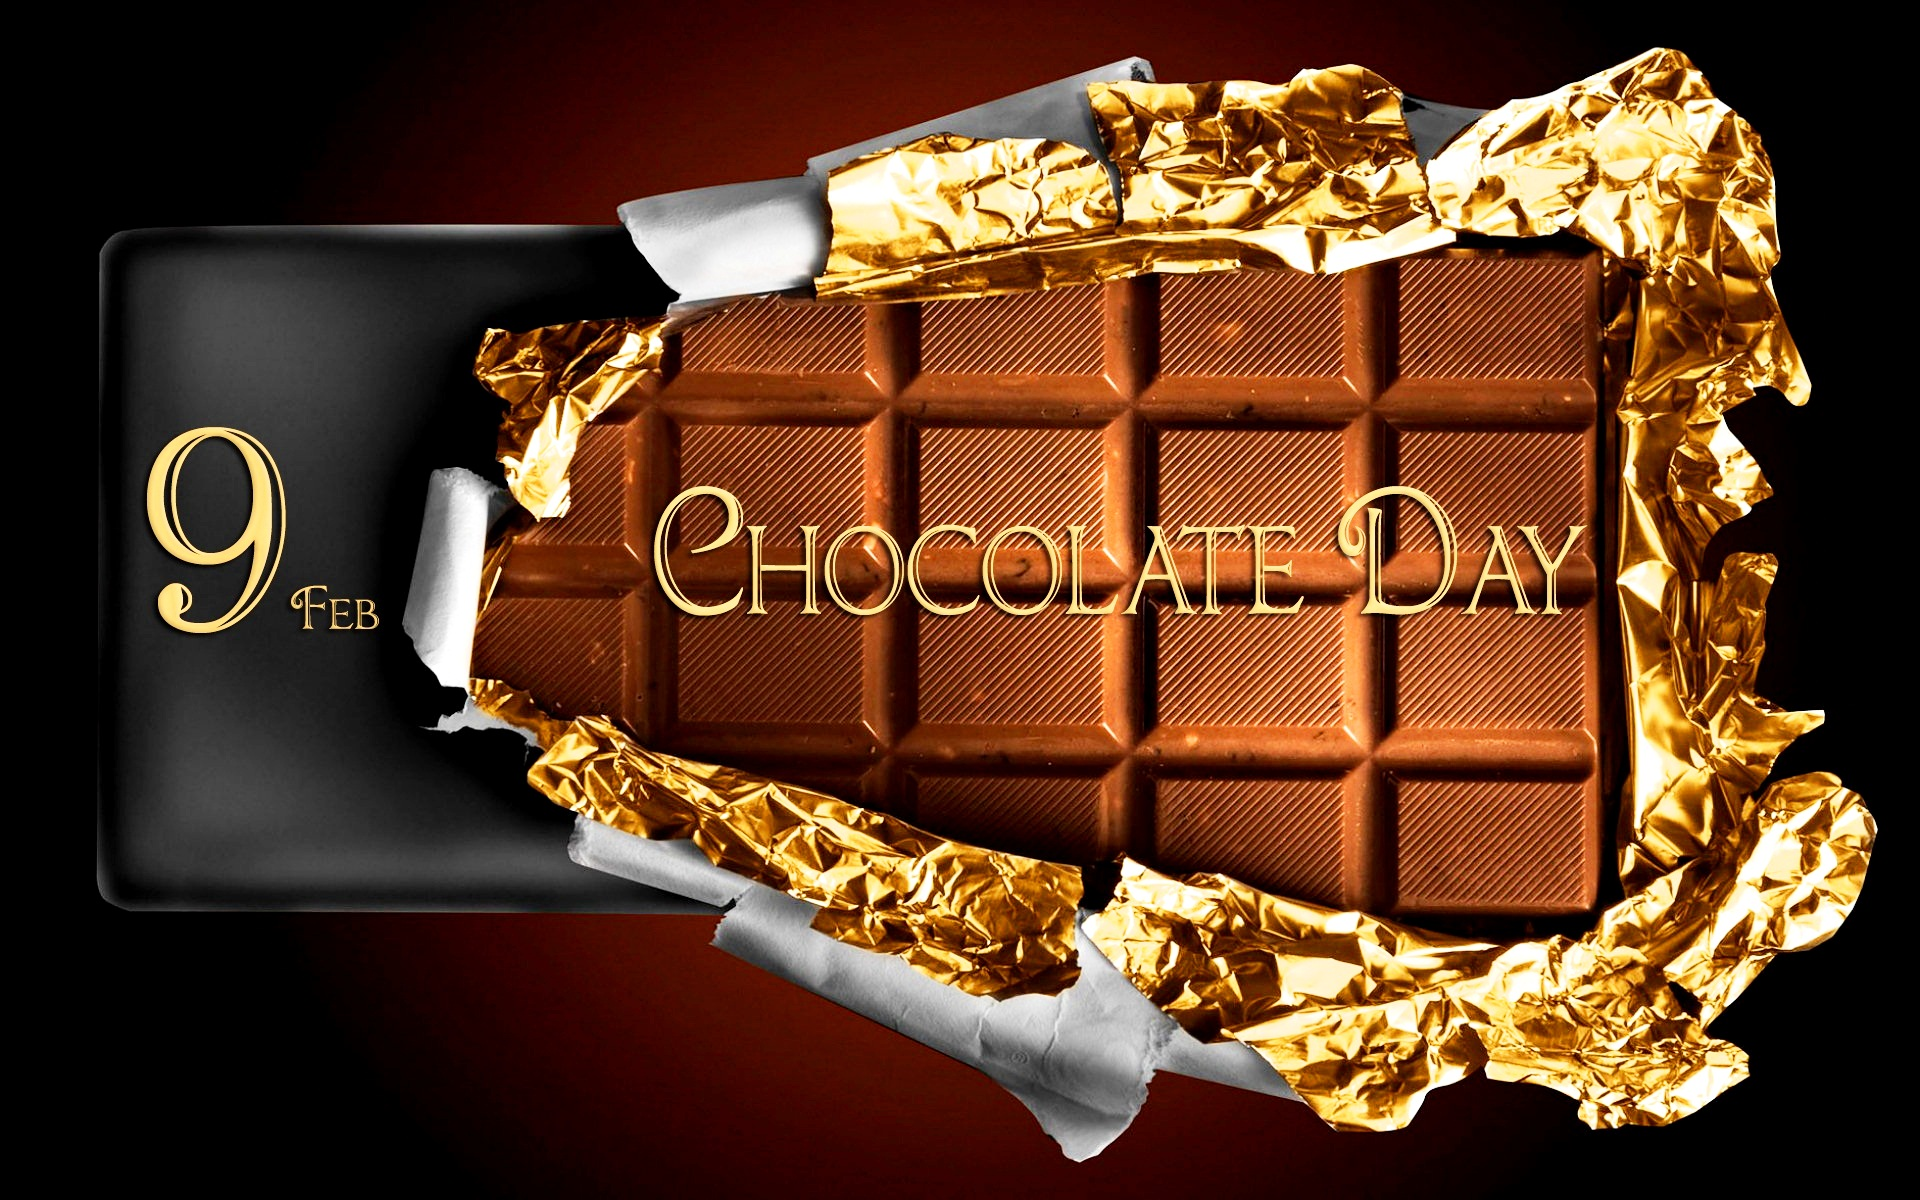 Chocolate Day Wallpapers HD – valentine greetings